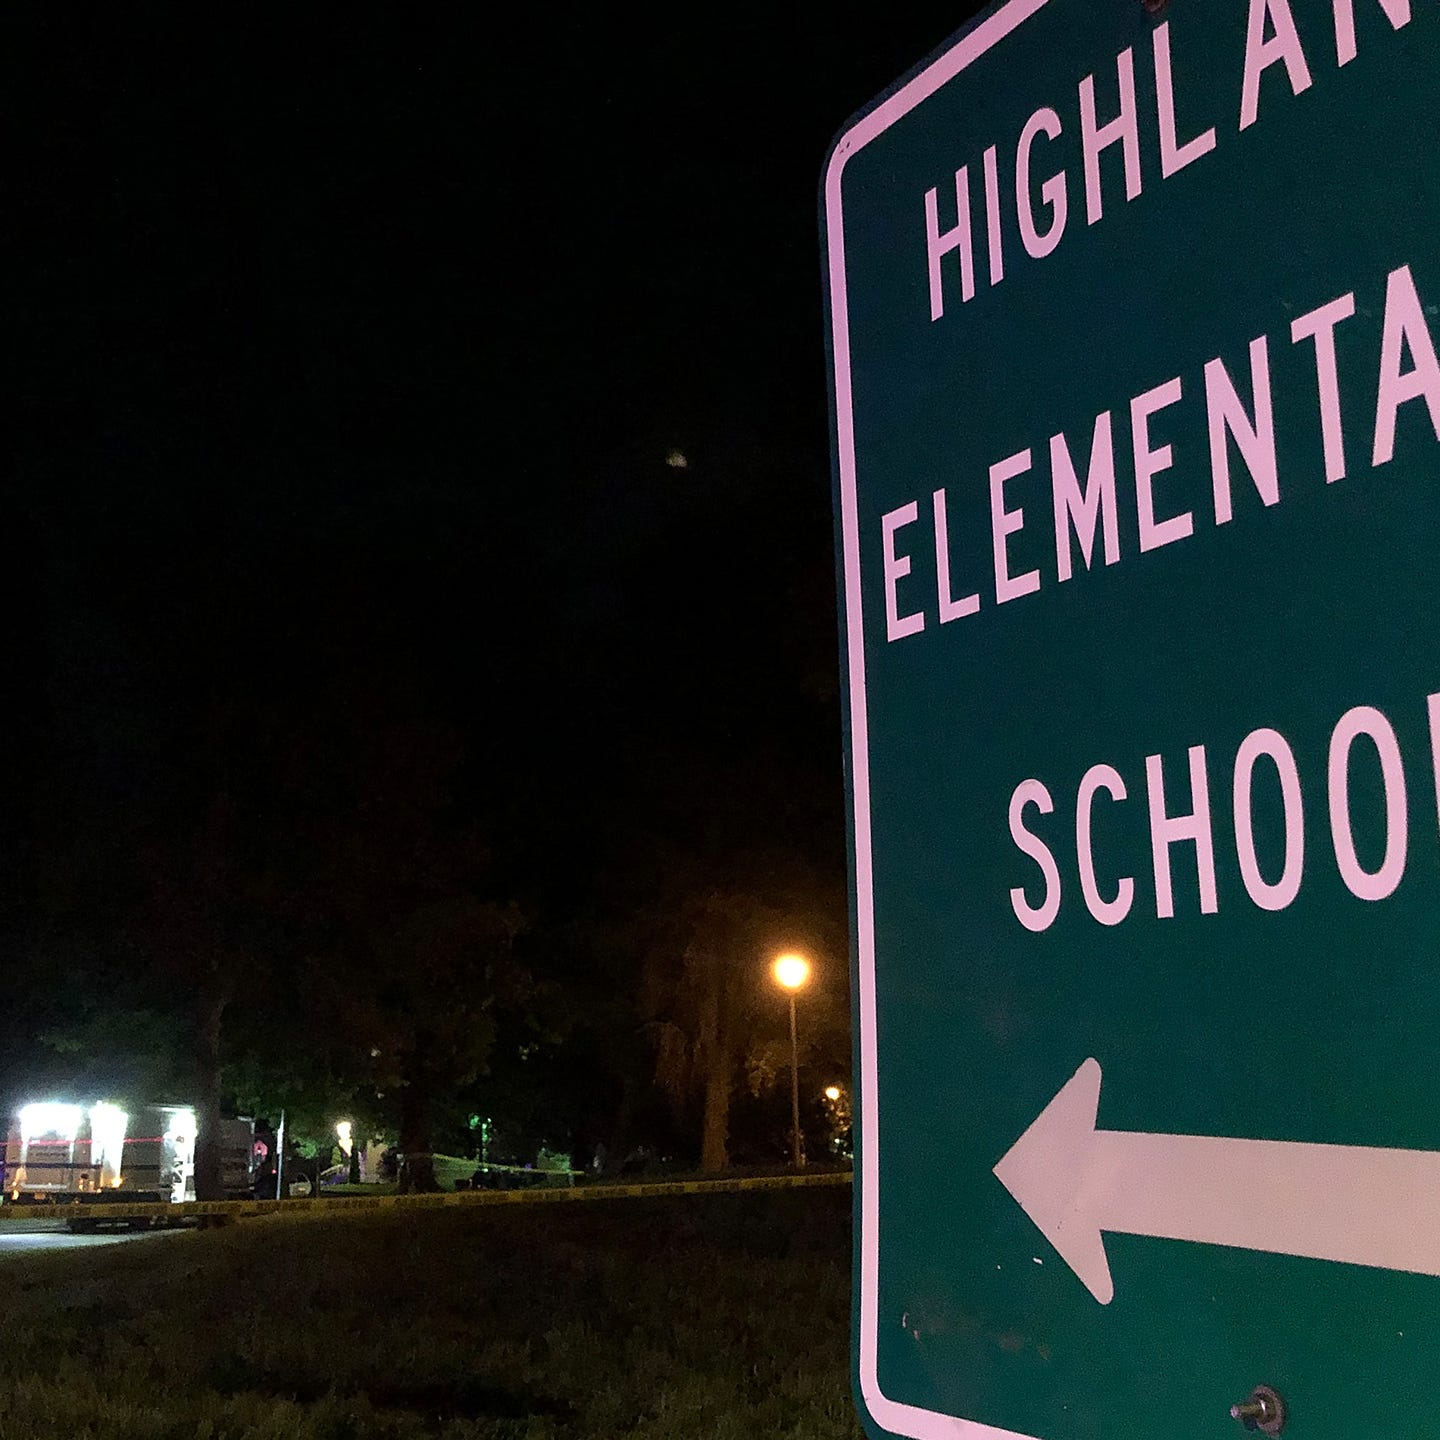 Highland Elementary School closed Wednesday following Salem shooting